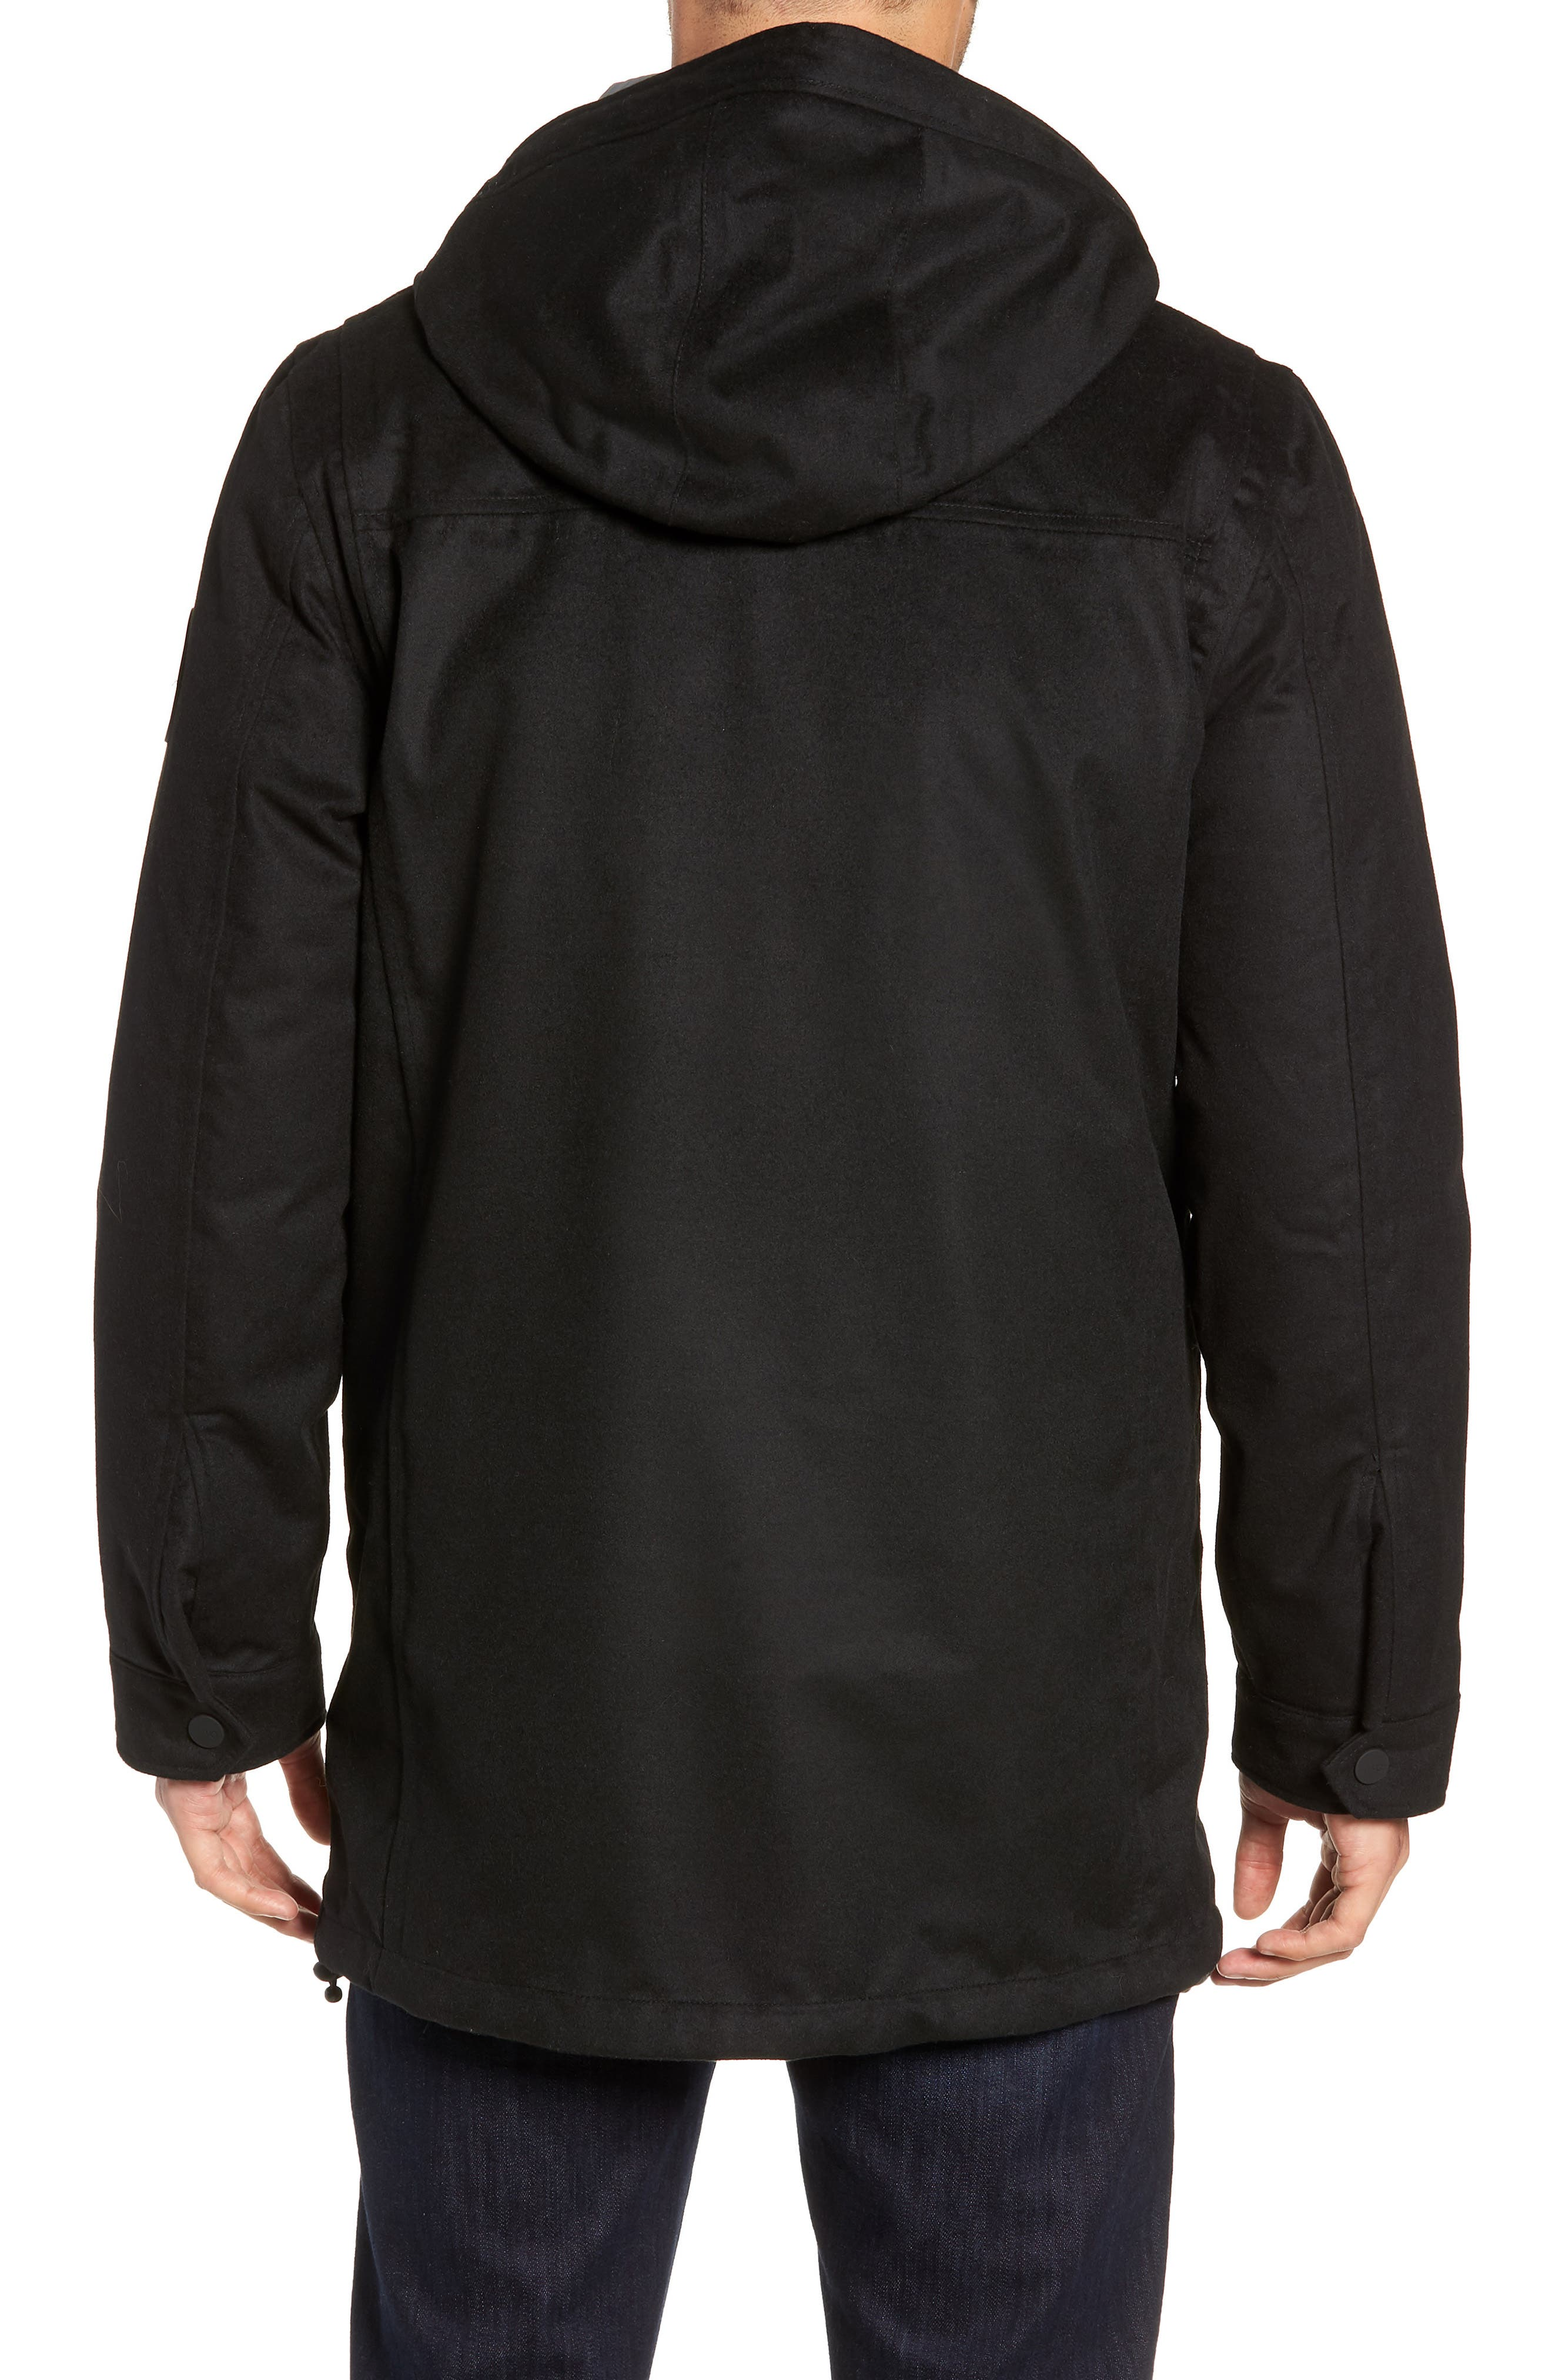 UGG<SUP>®</SUP>, Copeland 3-in-1 Parka, Alternate thumbnail 3, color, BLACK